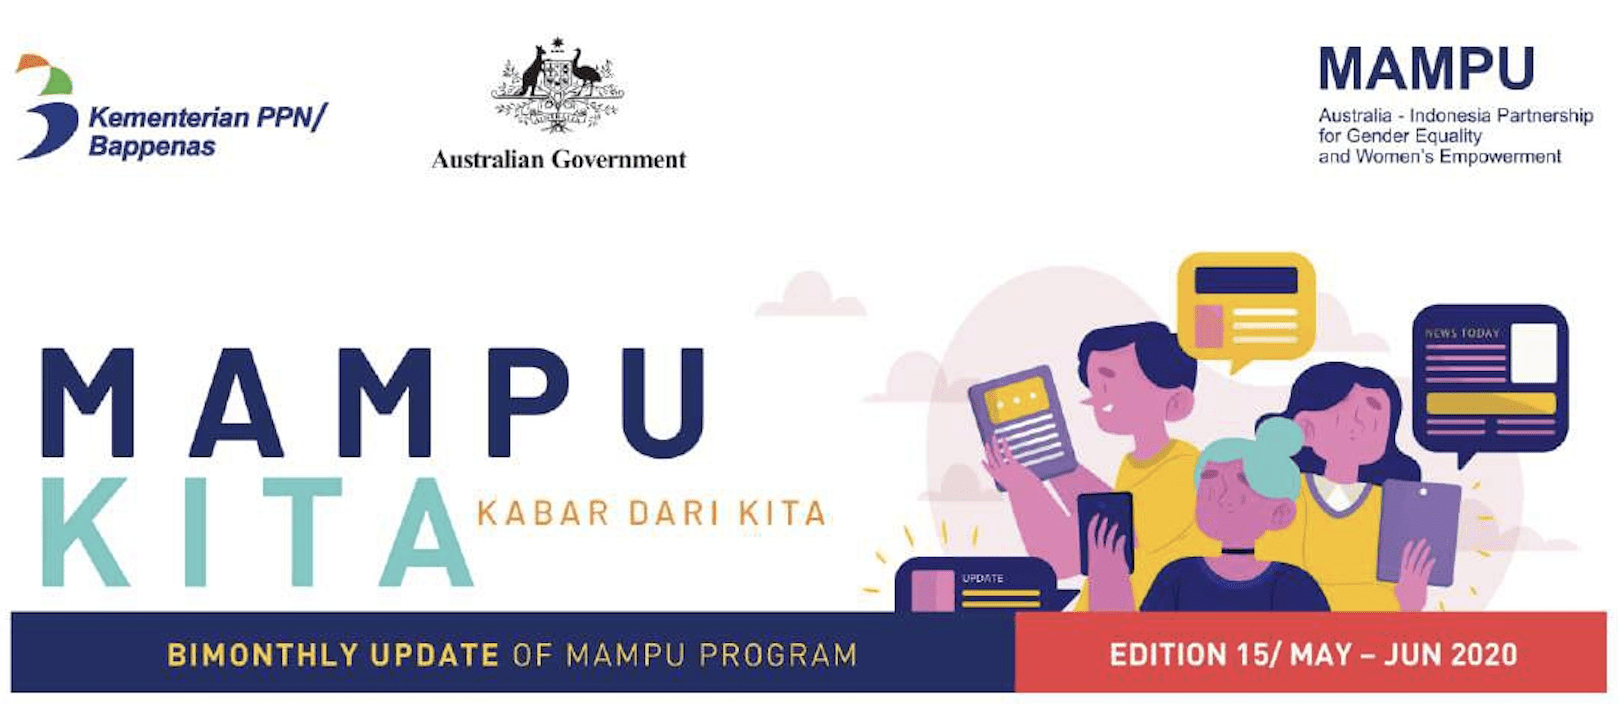 Projects in Action – Bimonthly Update (Edition 15): Australia-Indonesia Partnership for Gender Equality and Women's Empowerment (MAMPU)